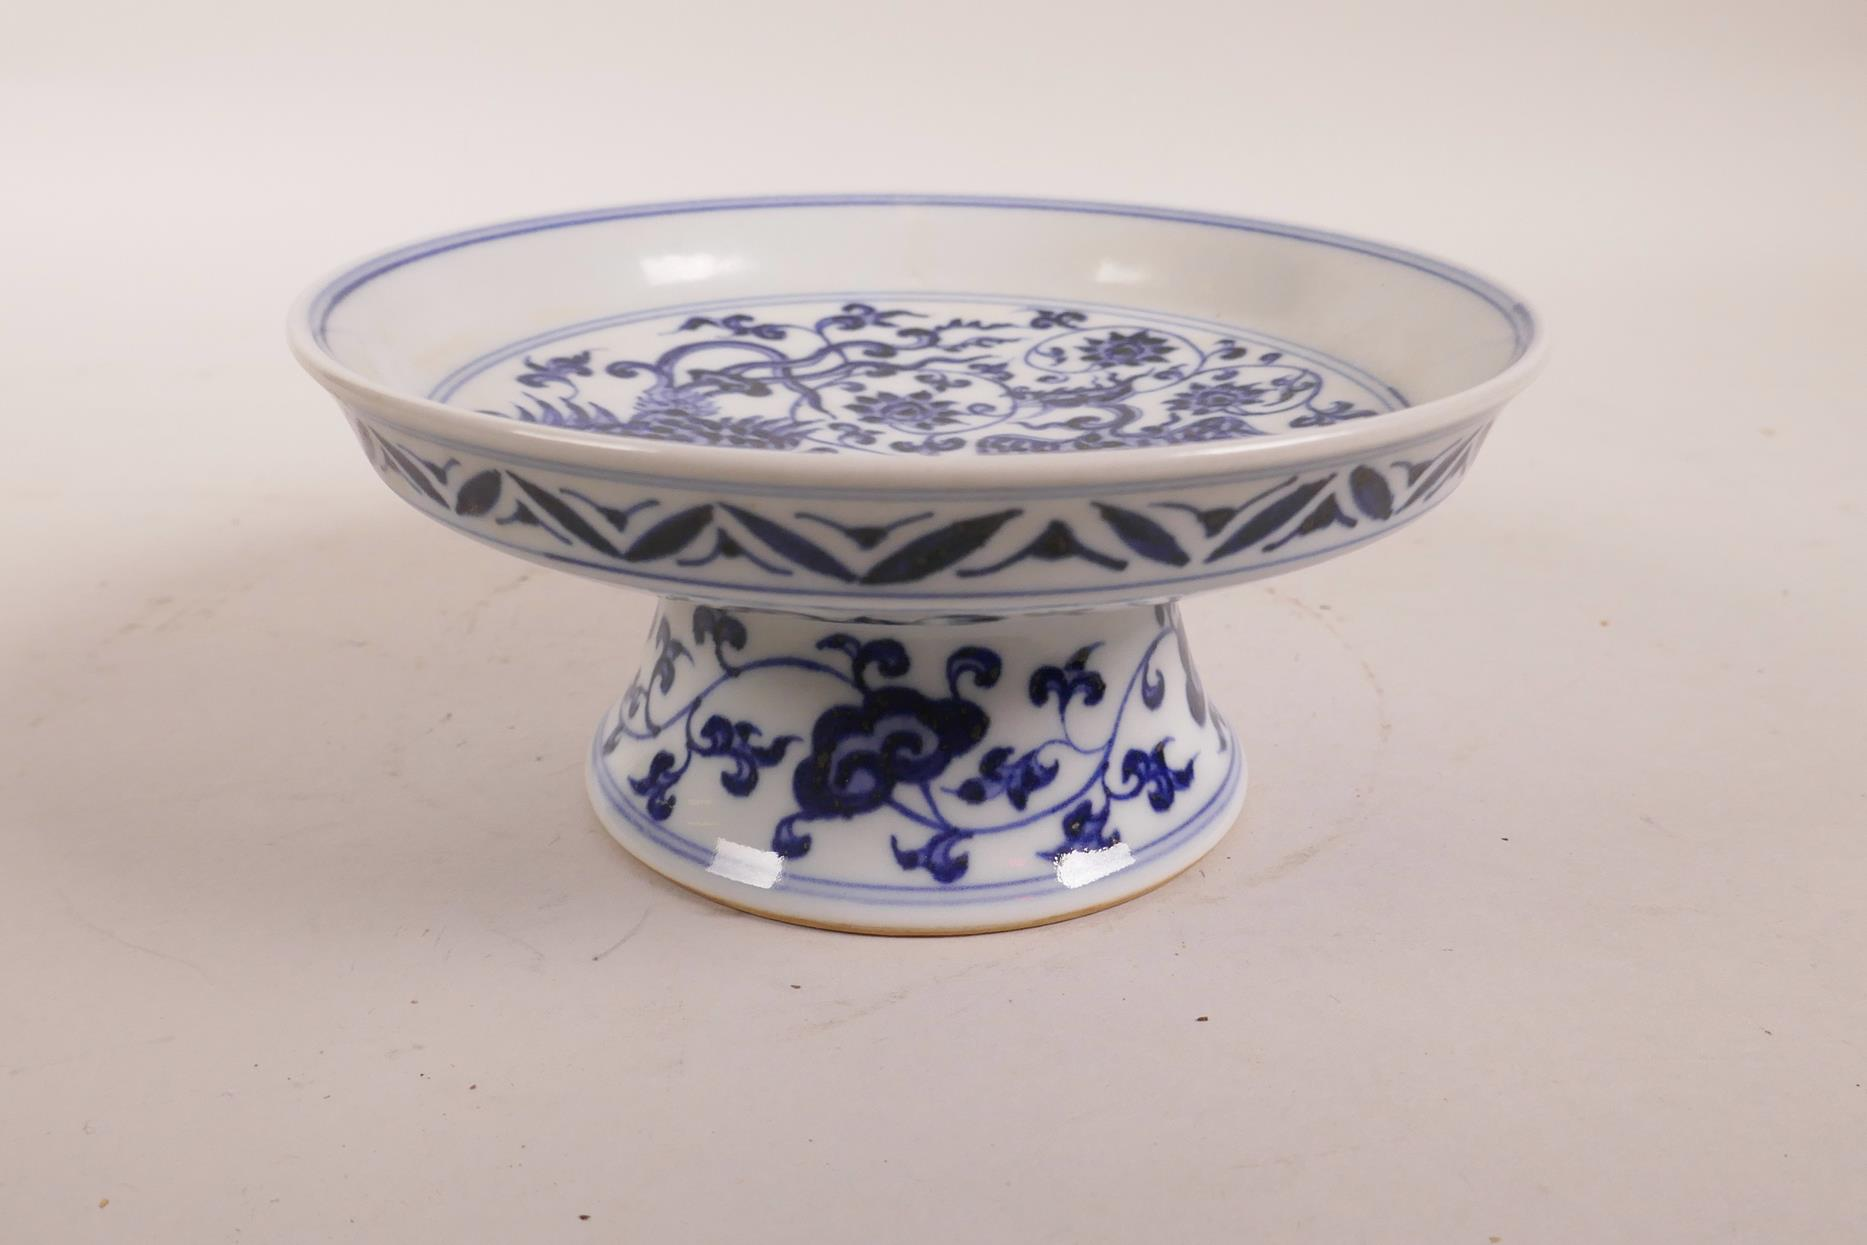 Lot 80 - A Chinese blue and white stem dish with scrolling lotus flower and phoenix decoration, 6 character